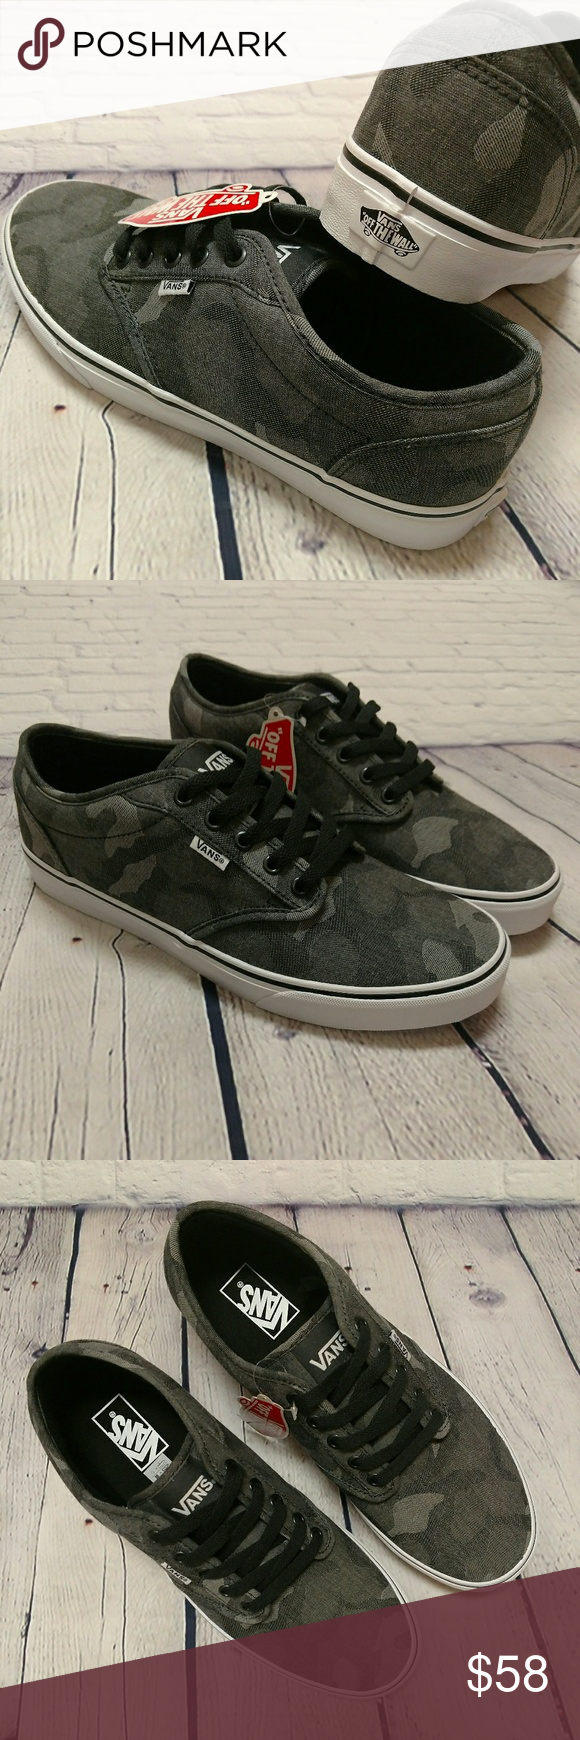 7a033fc36d Vans Atwood Camo Phantom Drizzle Skate Shoe 11 New with tag